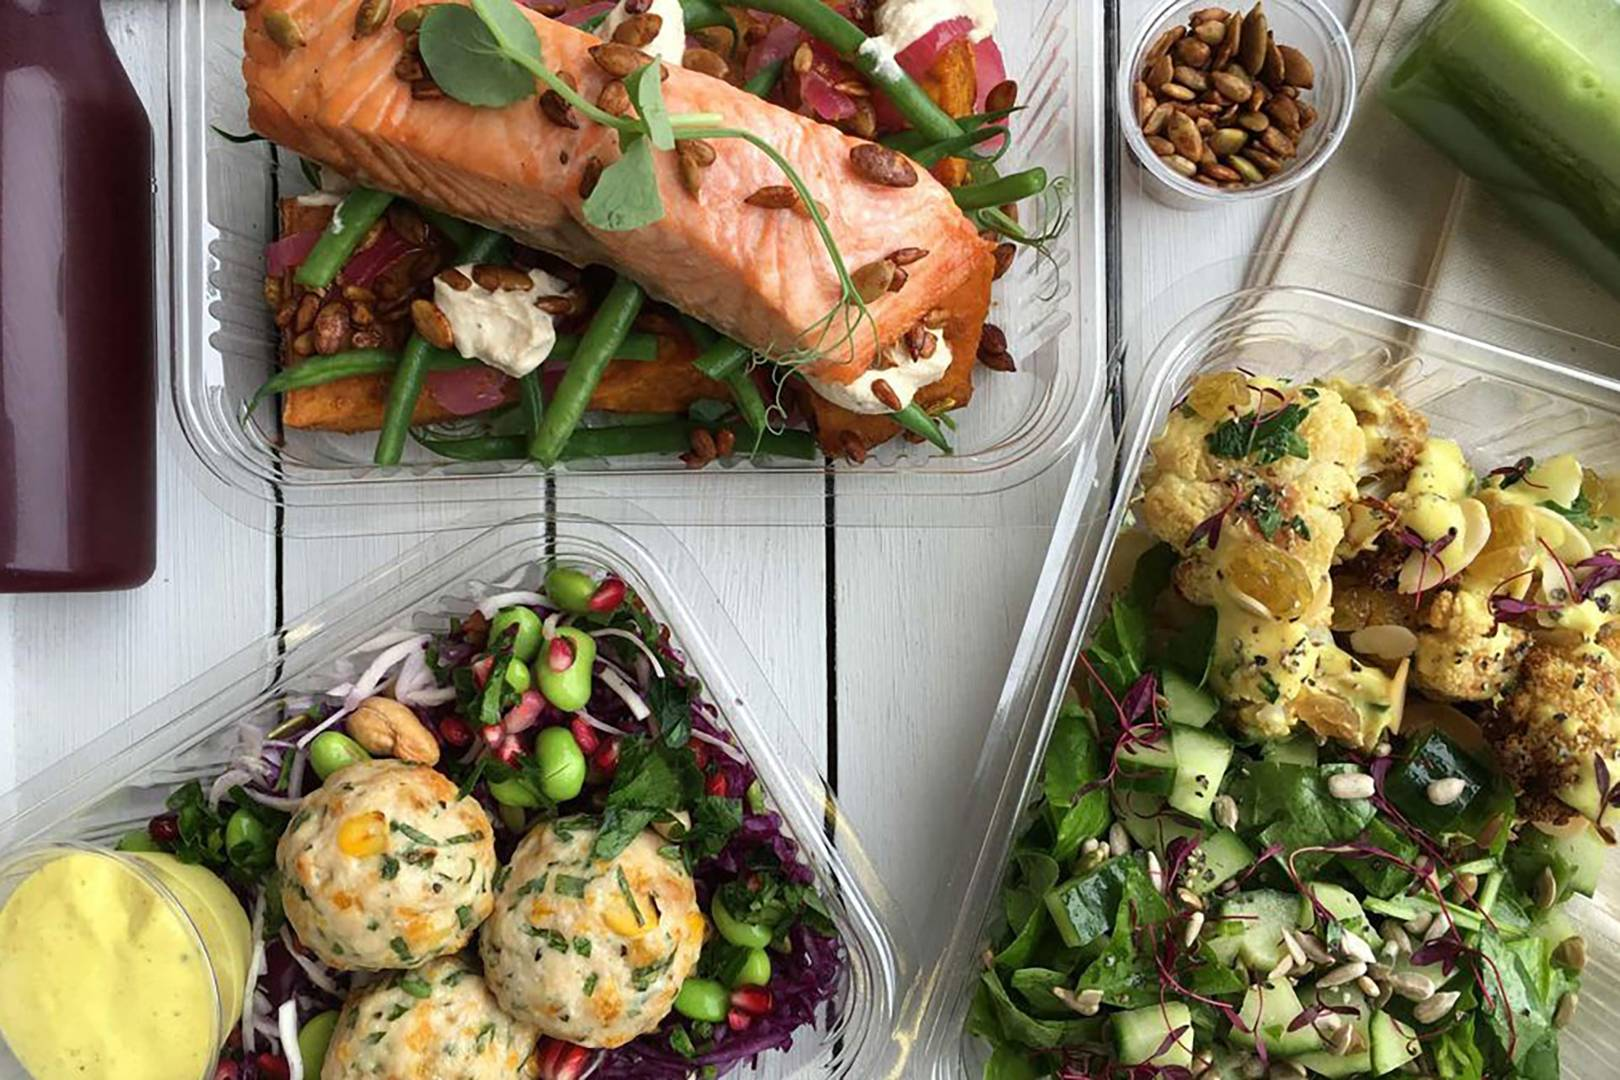 Meal delivery uk the best healthy meal prep delivery options ranked meal delivery uk the best healthy meal prep delivery options ranked glamour uk forumfinder Choice Image